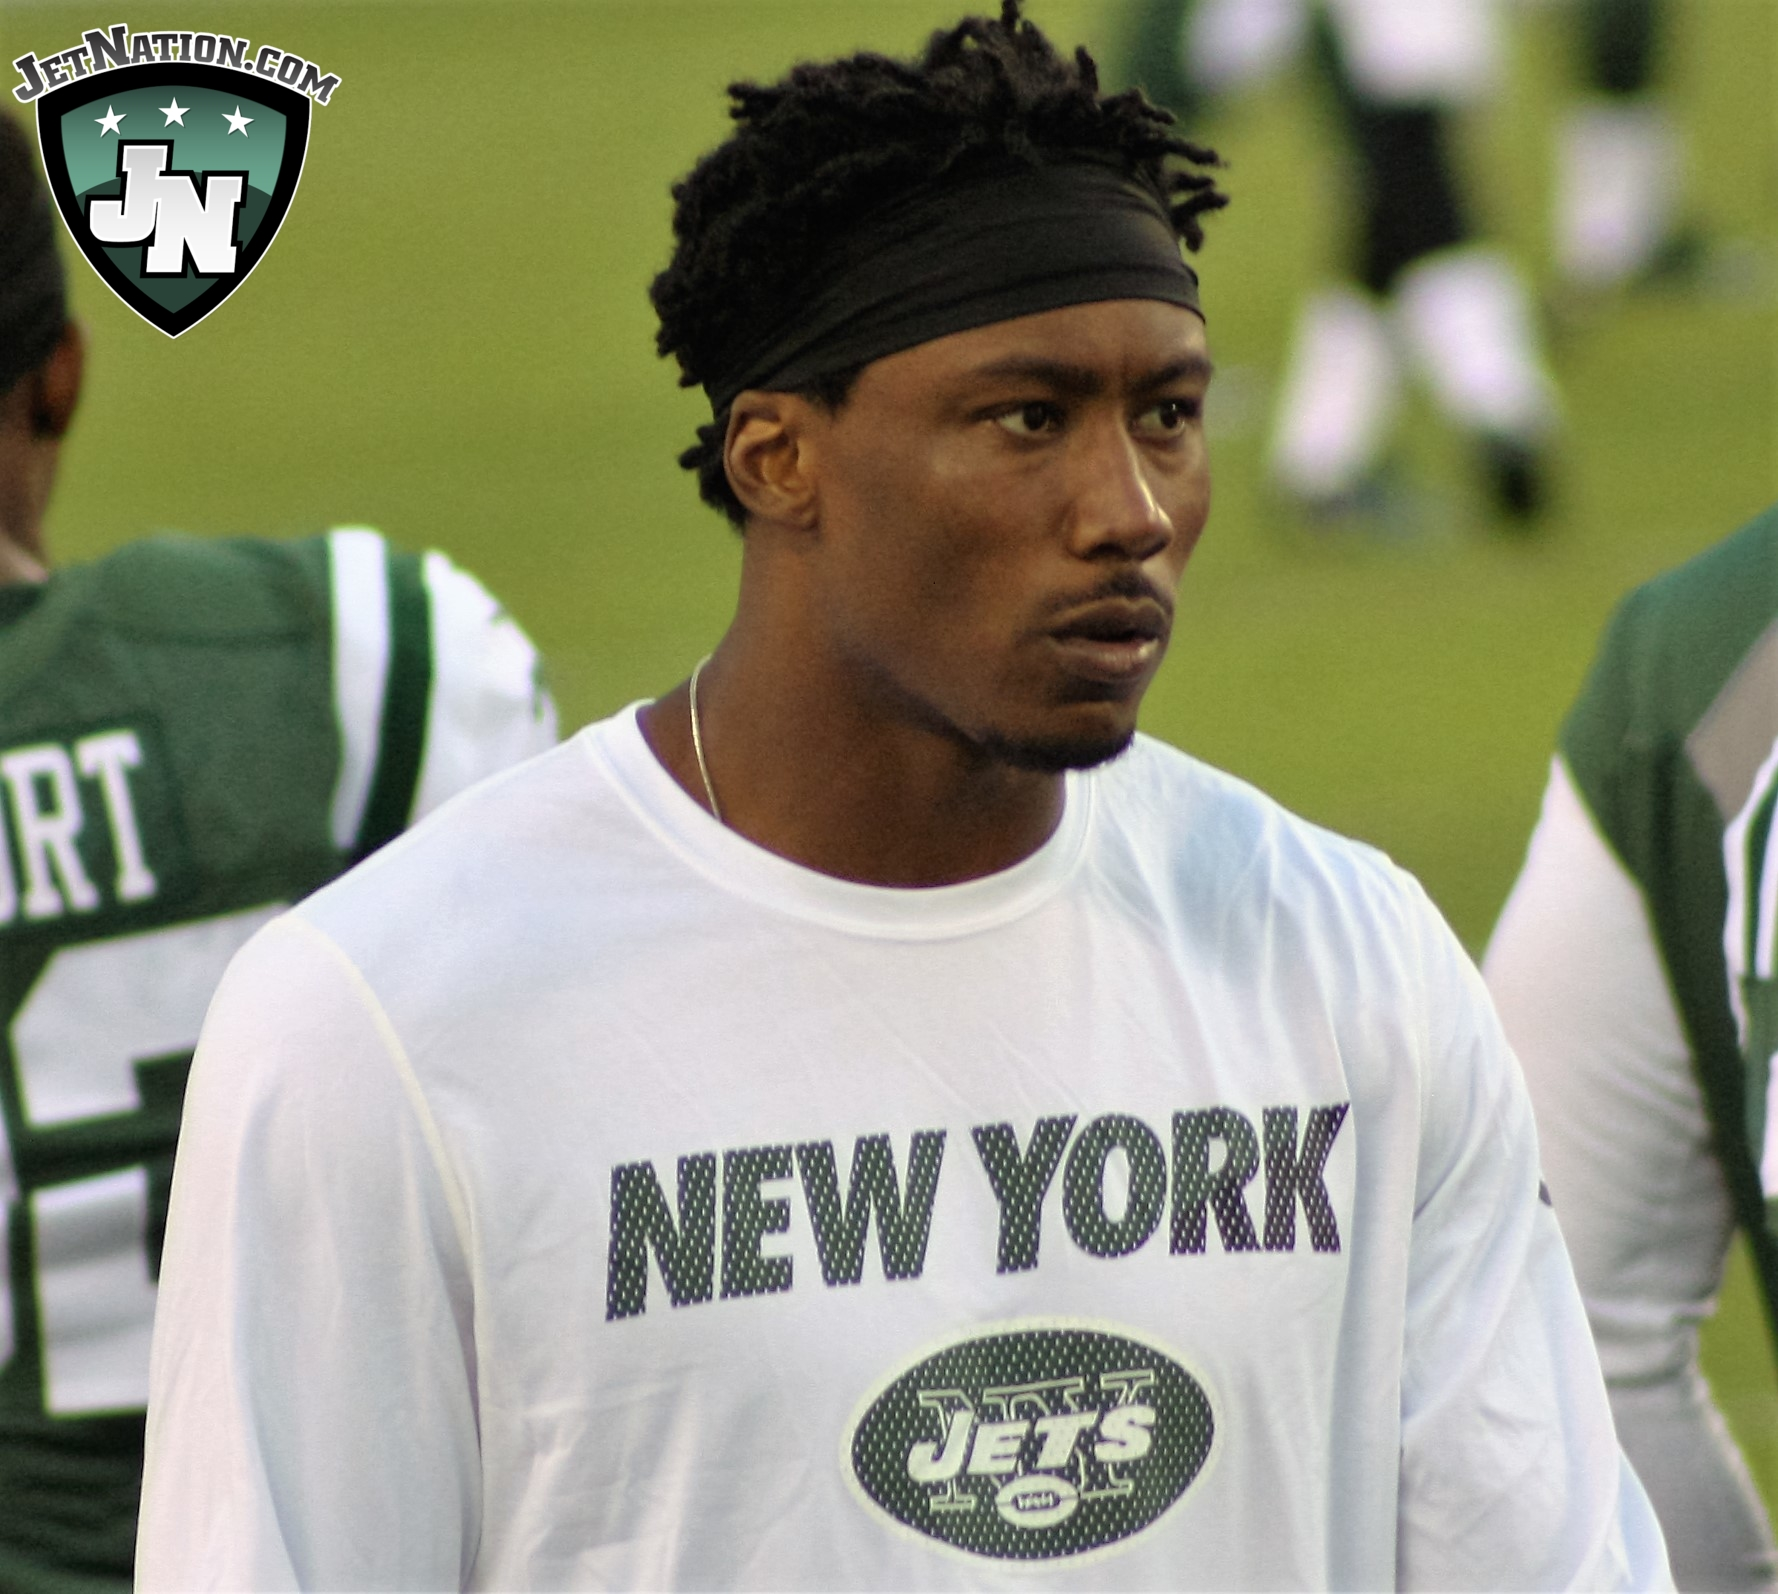 Brandon Marshall Added to Extensive Jets Injury Report